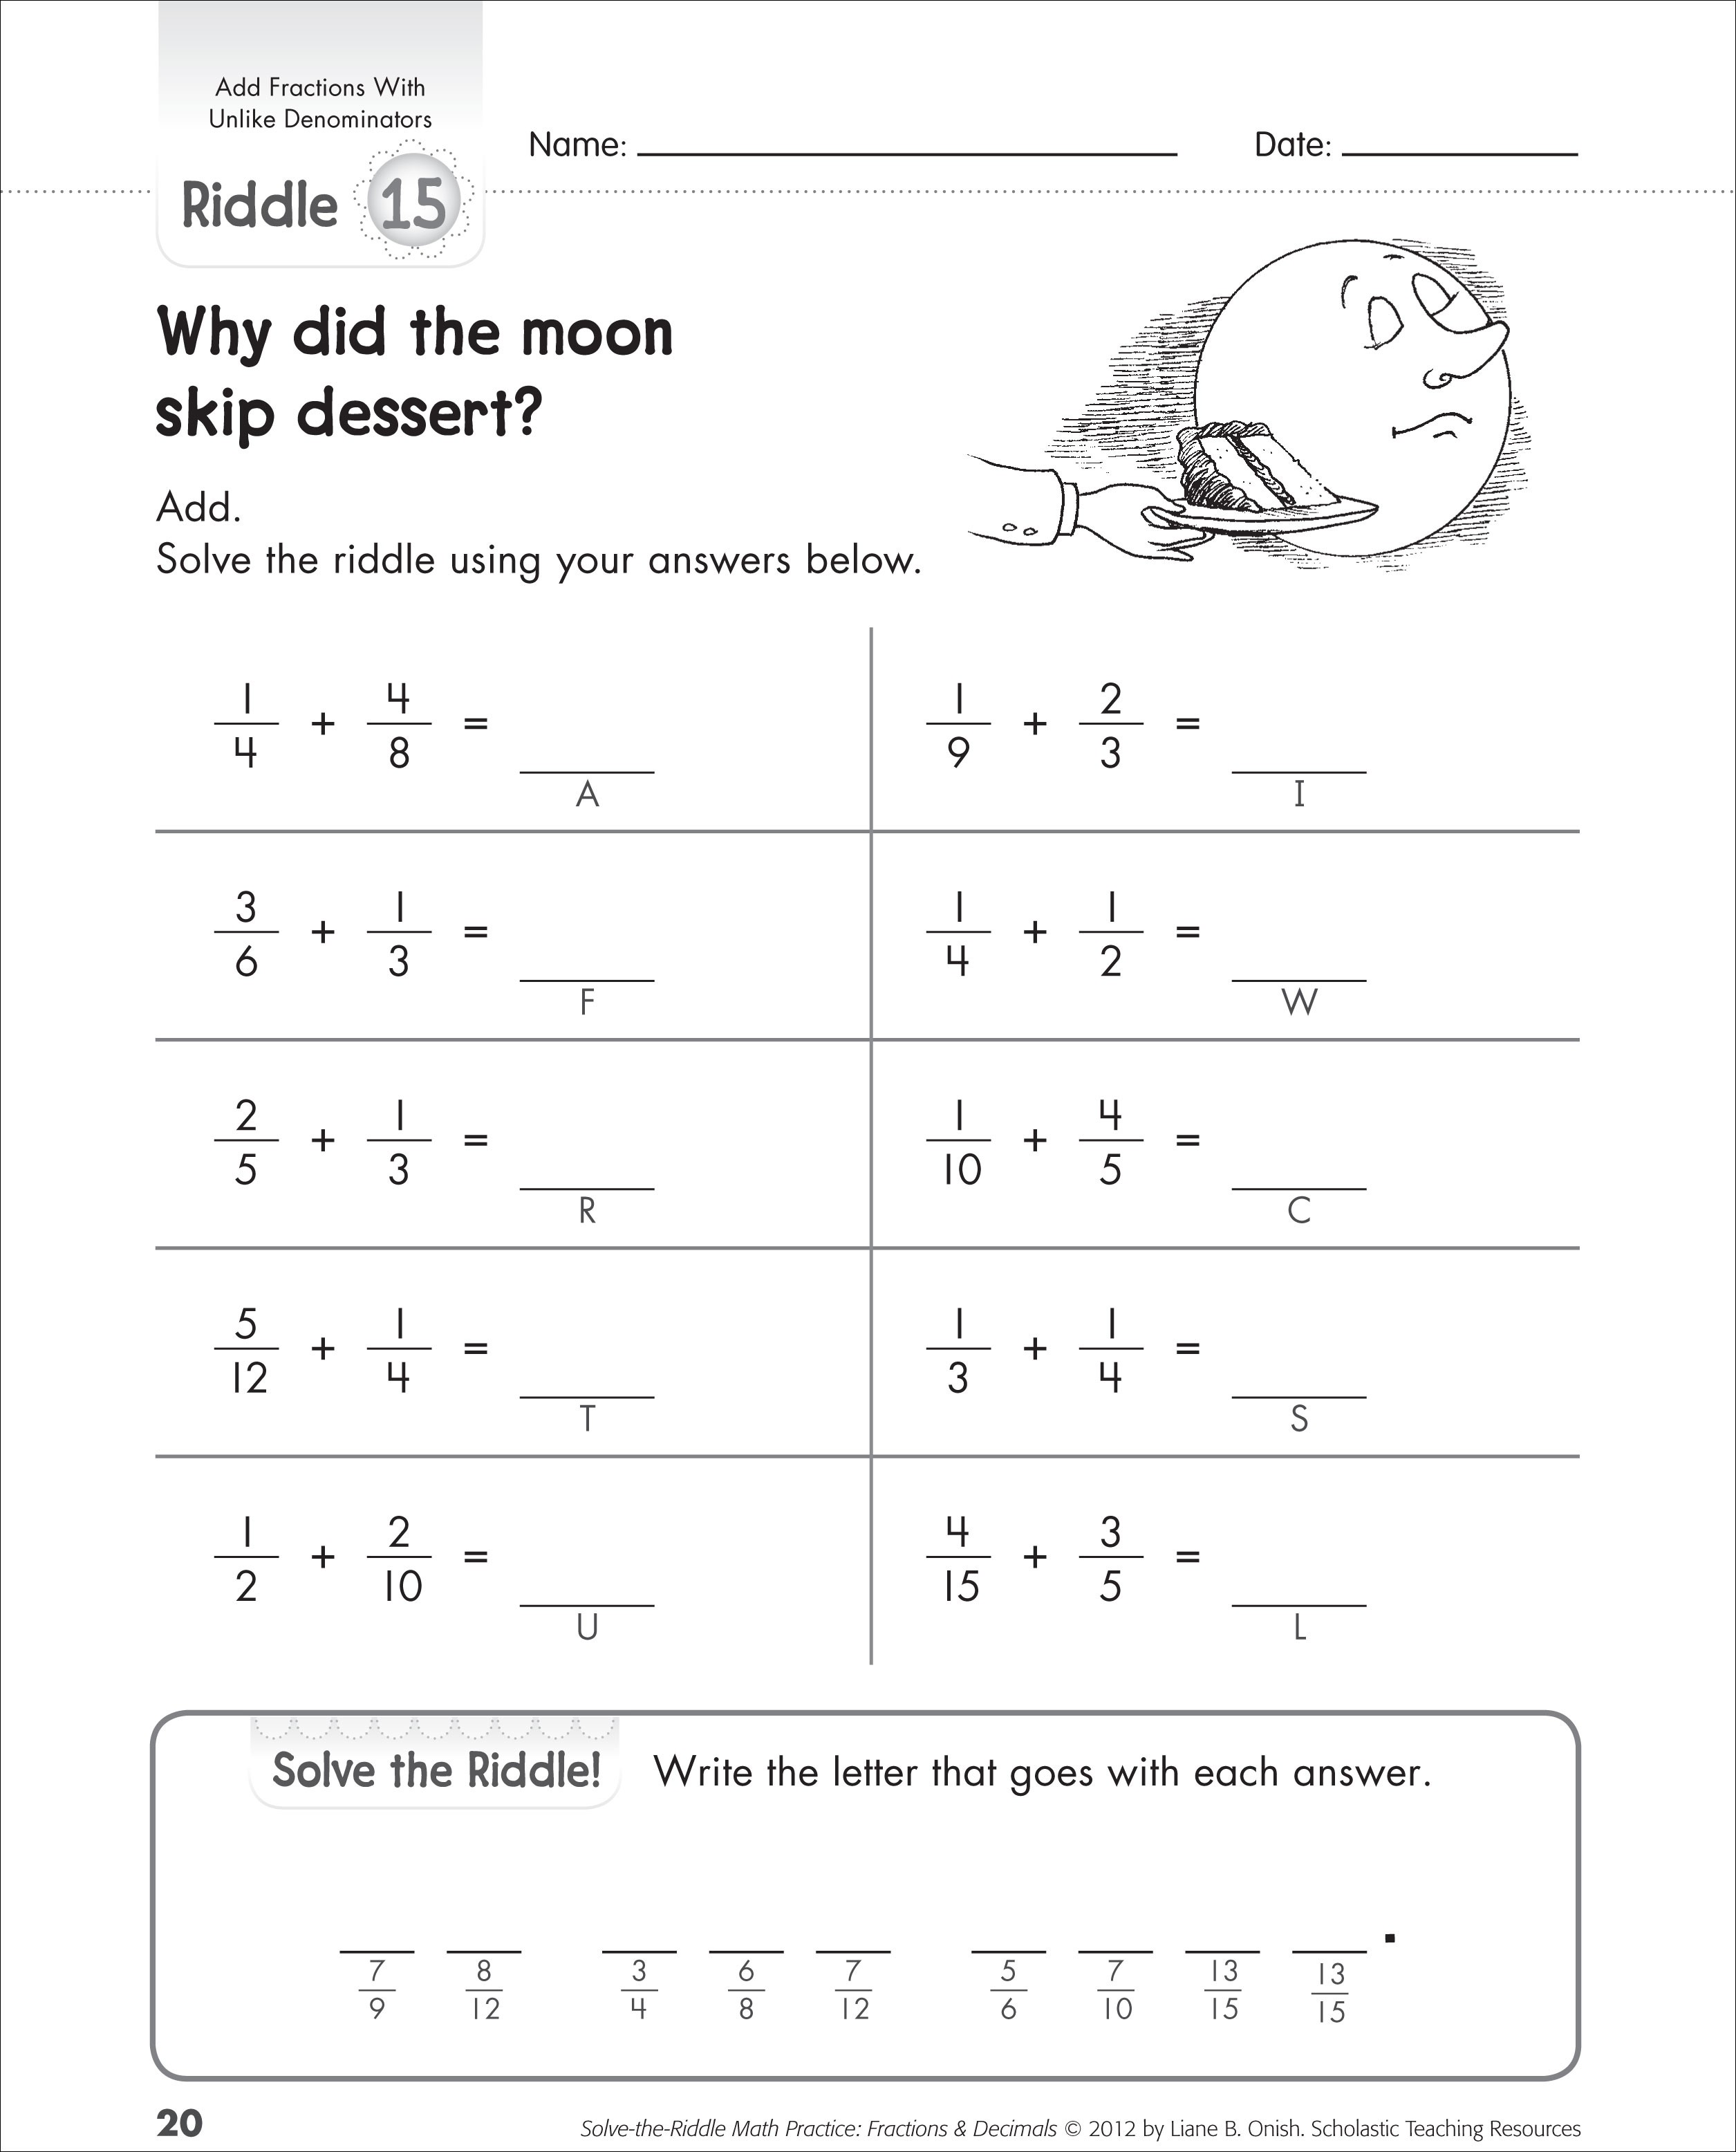 Unlike Denominator Fraction Worksheet For Grade 5